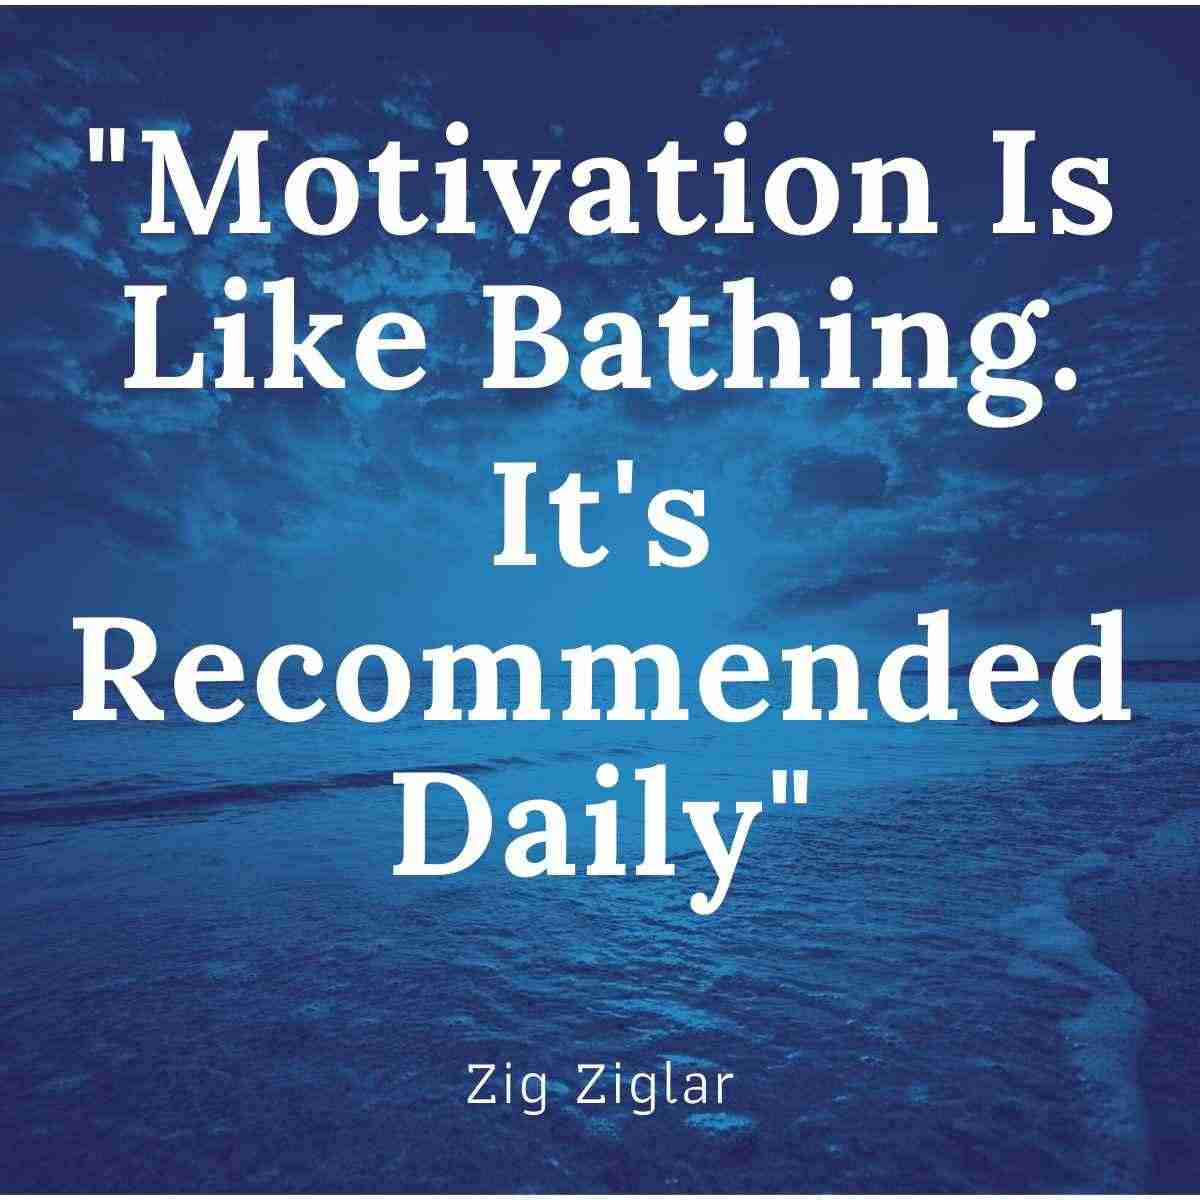 Motivation is Recommended Daily